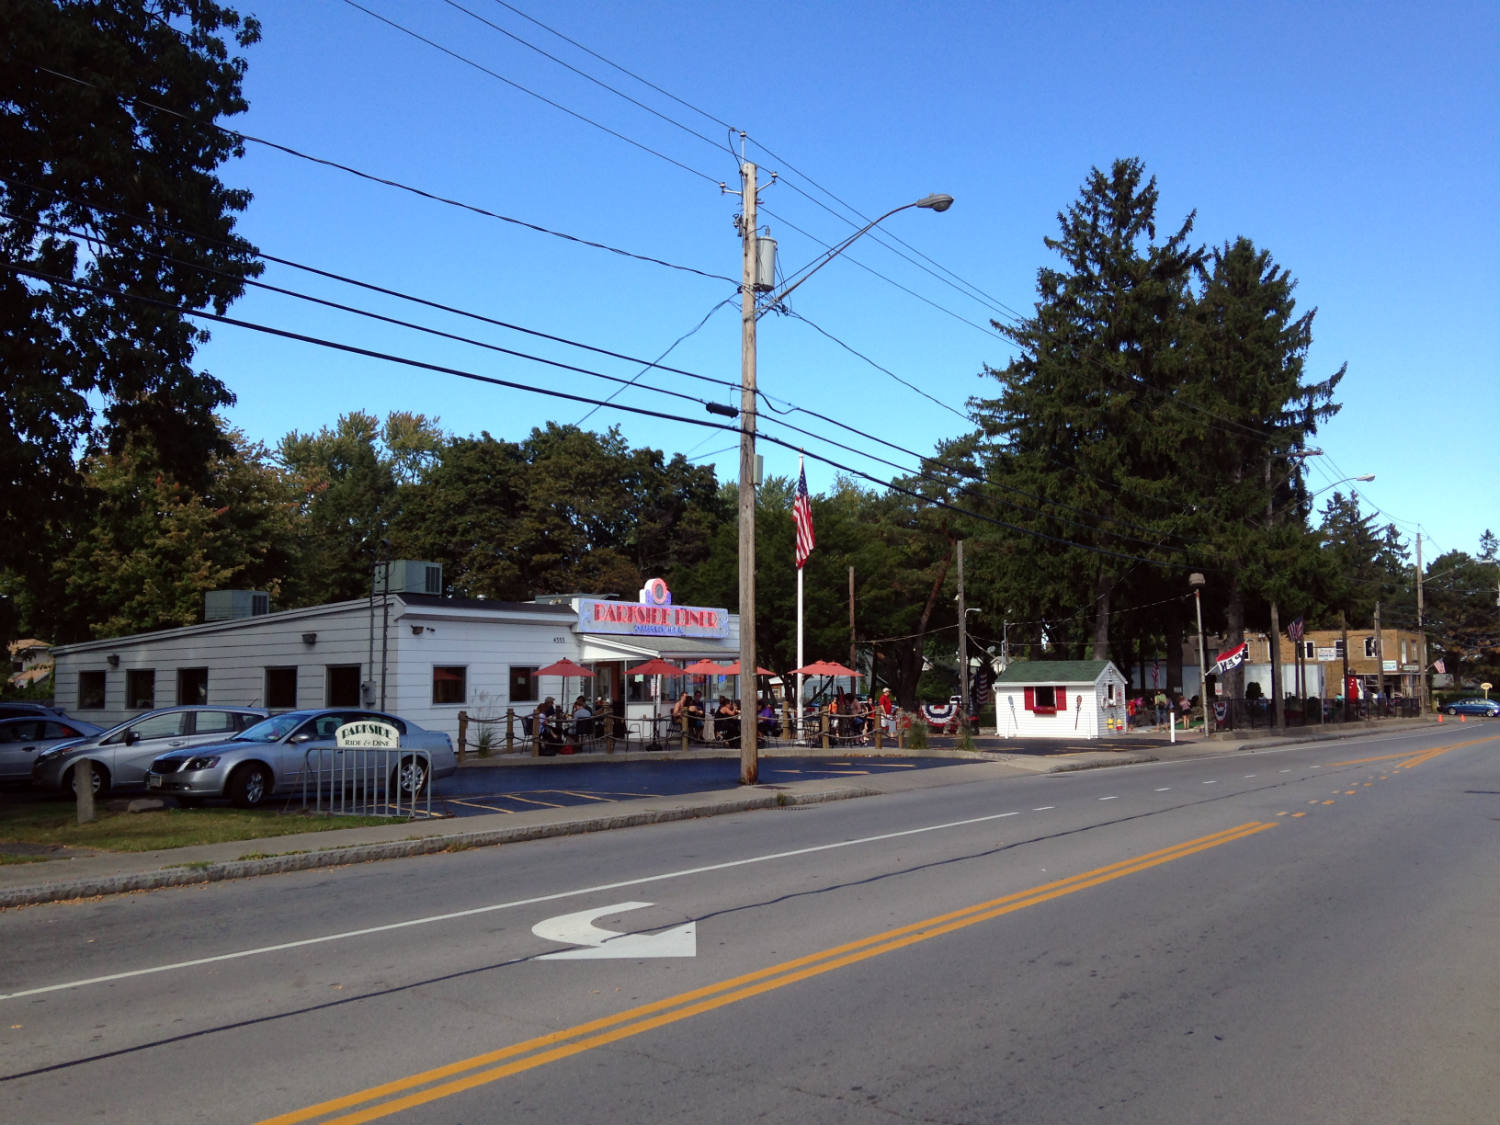 Culver Road view of Parkside Diner and Whispering Pines Mini Golf; Rochester, NY